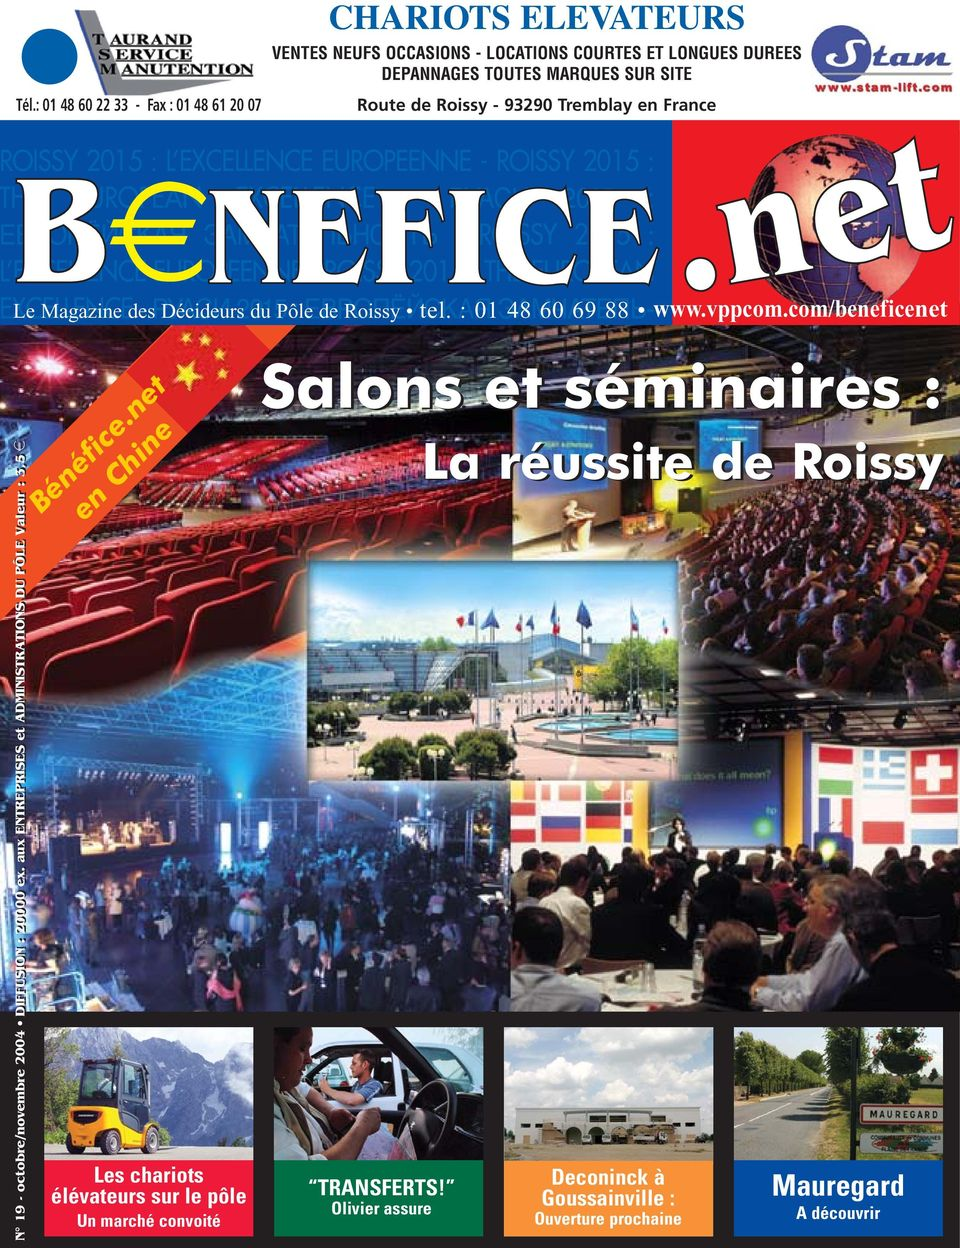 XCELLENCE BLe Magazine des - РУАСИ Décideurs 2015 du Pôle : ЕВРОПЁЙСКАЯ de Roissy tel. : 01 ЭАМЧАТЕПЬ- 48 60 69 88 www.vppcom.com/beneficenet NEFICE.